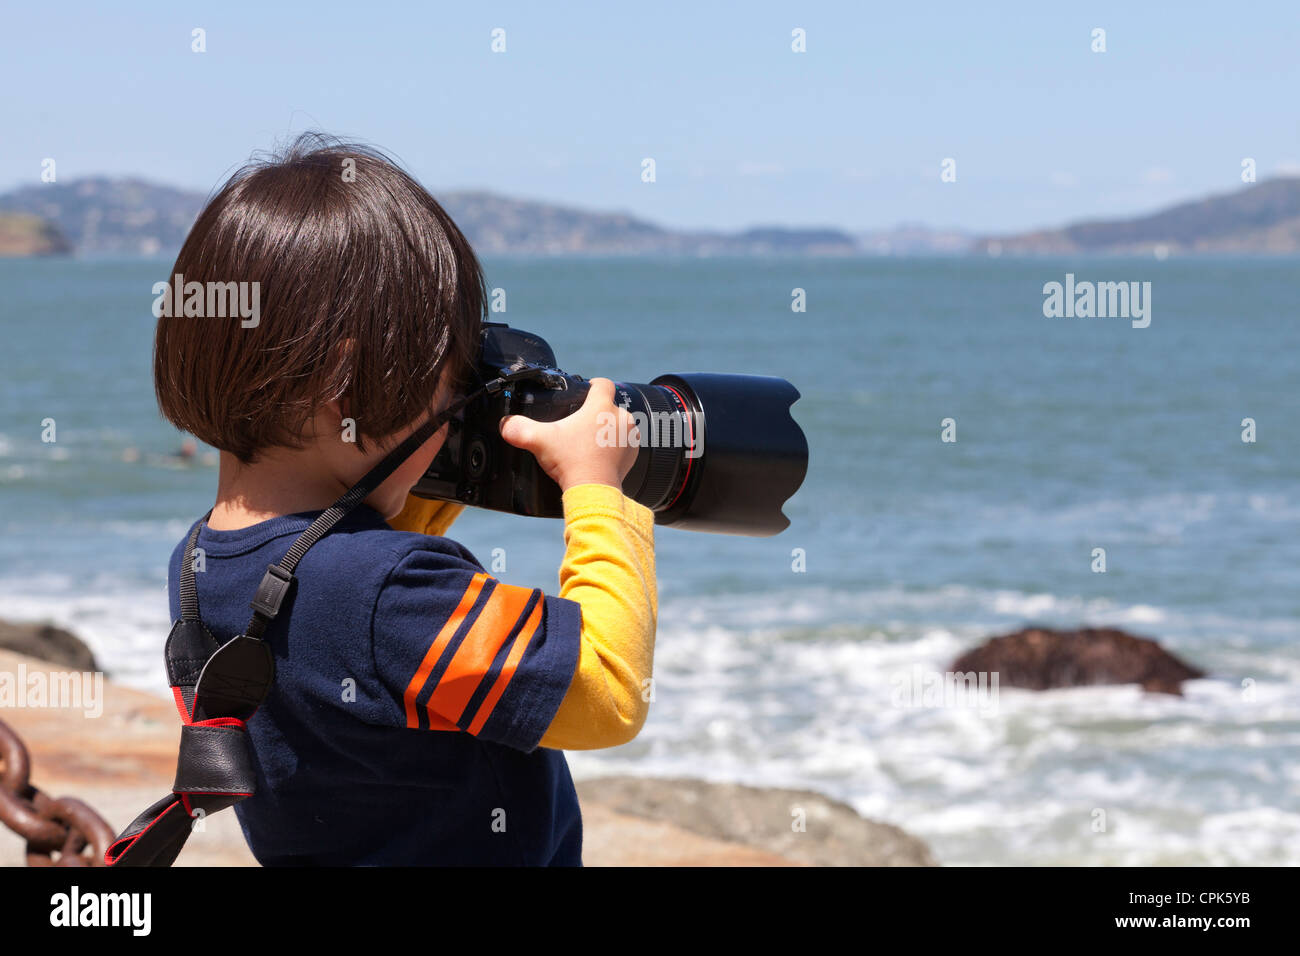 Child photographer taking pictures with dSLR camera - USA - Stock Image